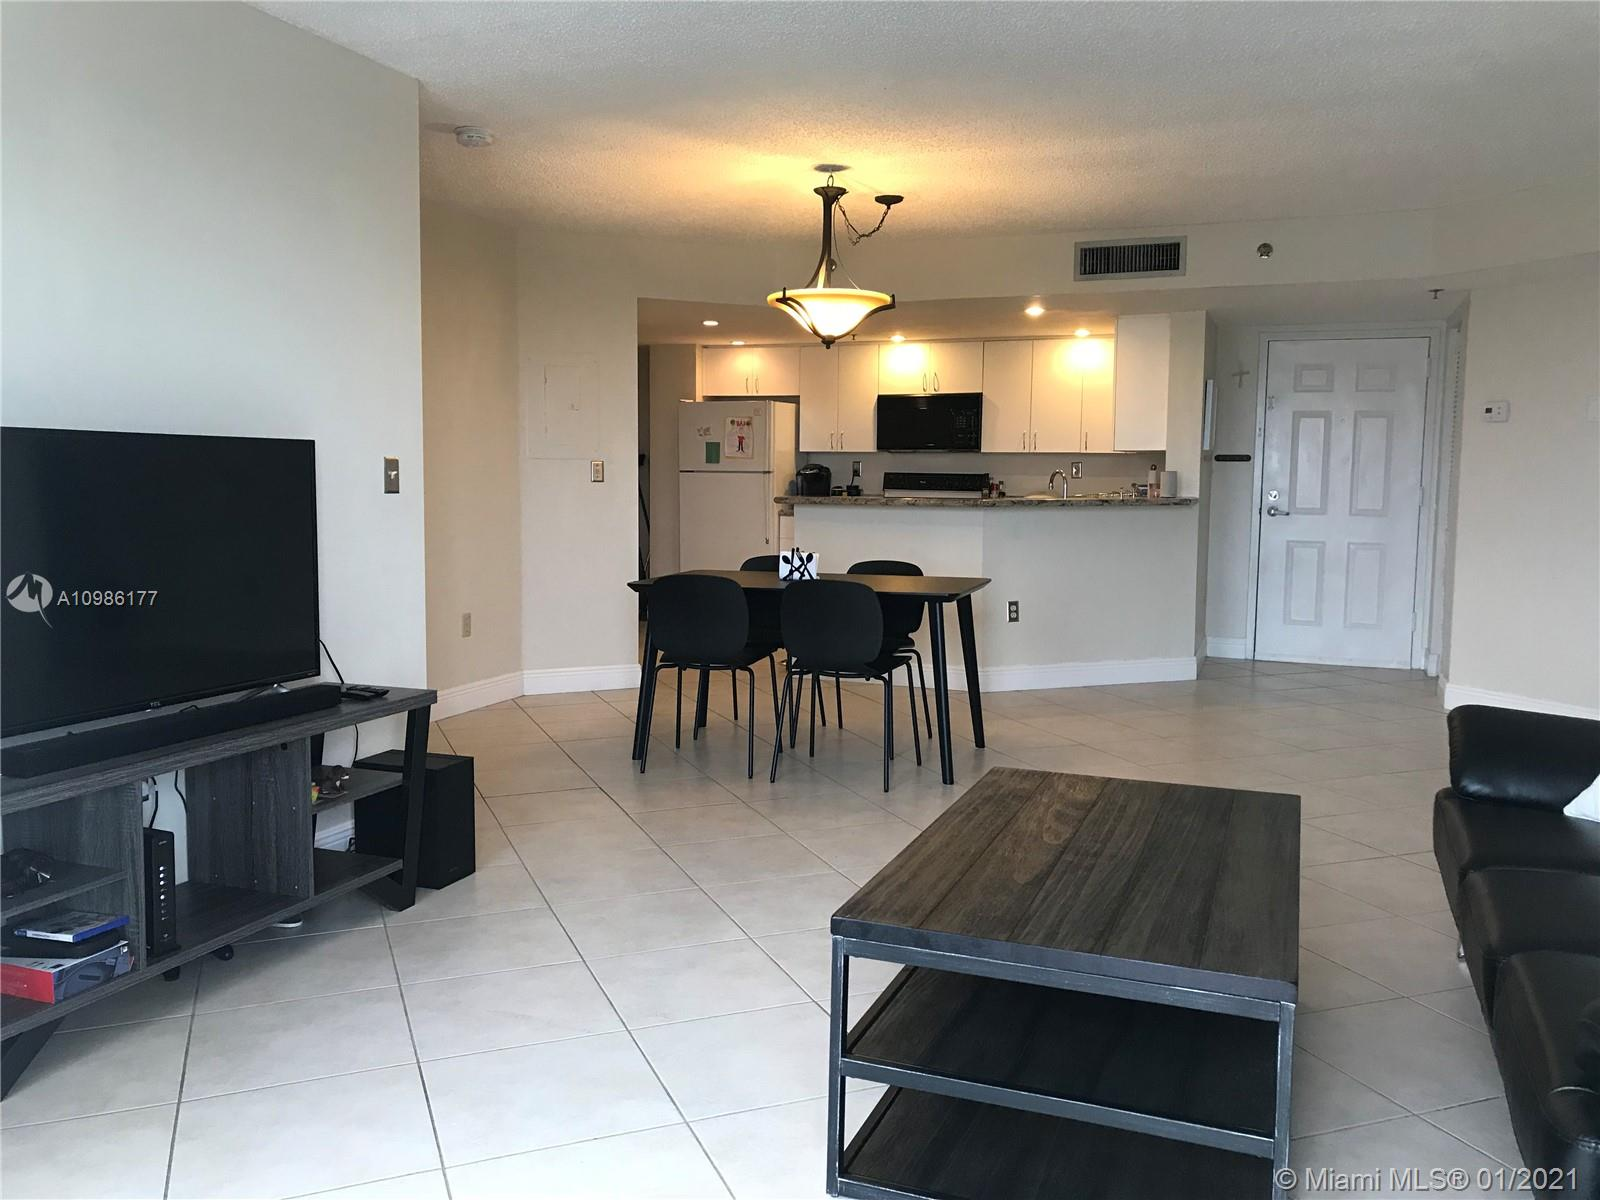 """GREAT LOCATION! 2/2 Corner unit on the 11th floor overlooking Beautiful Coral Gables -  2 blocks from """"Miracle Mile"""".  Split floorplan with walk in closet, open kitchen with granite counter top, washer / dryer in the unit and tile throughout.  Pool with outdoor kitchen, Business Center, Club Room, Security, Front Door Attendant, assigned covered parking as well as guest parking. ***Schedule on Showing Time*** Tenant Occupied till 2/28***"""